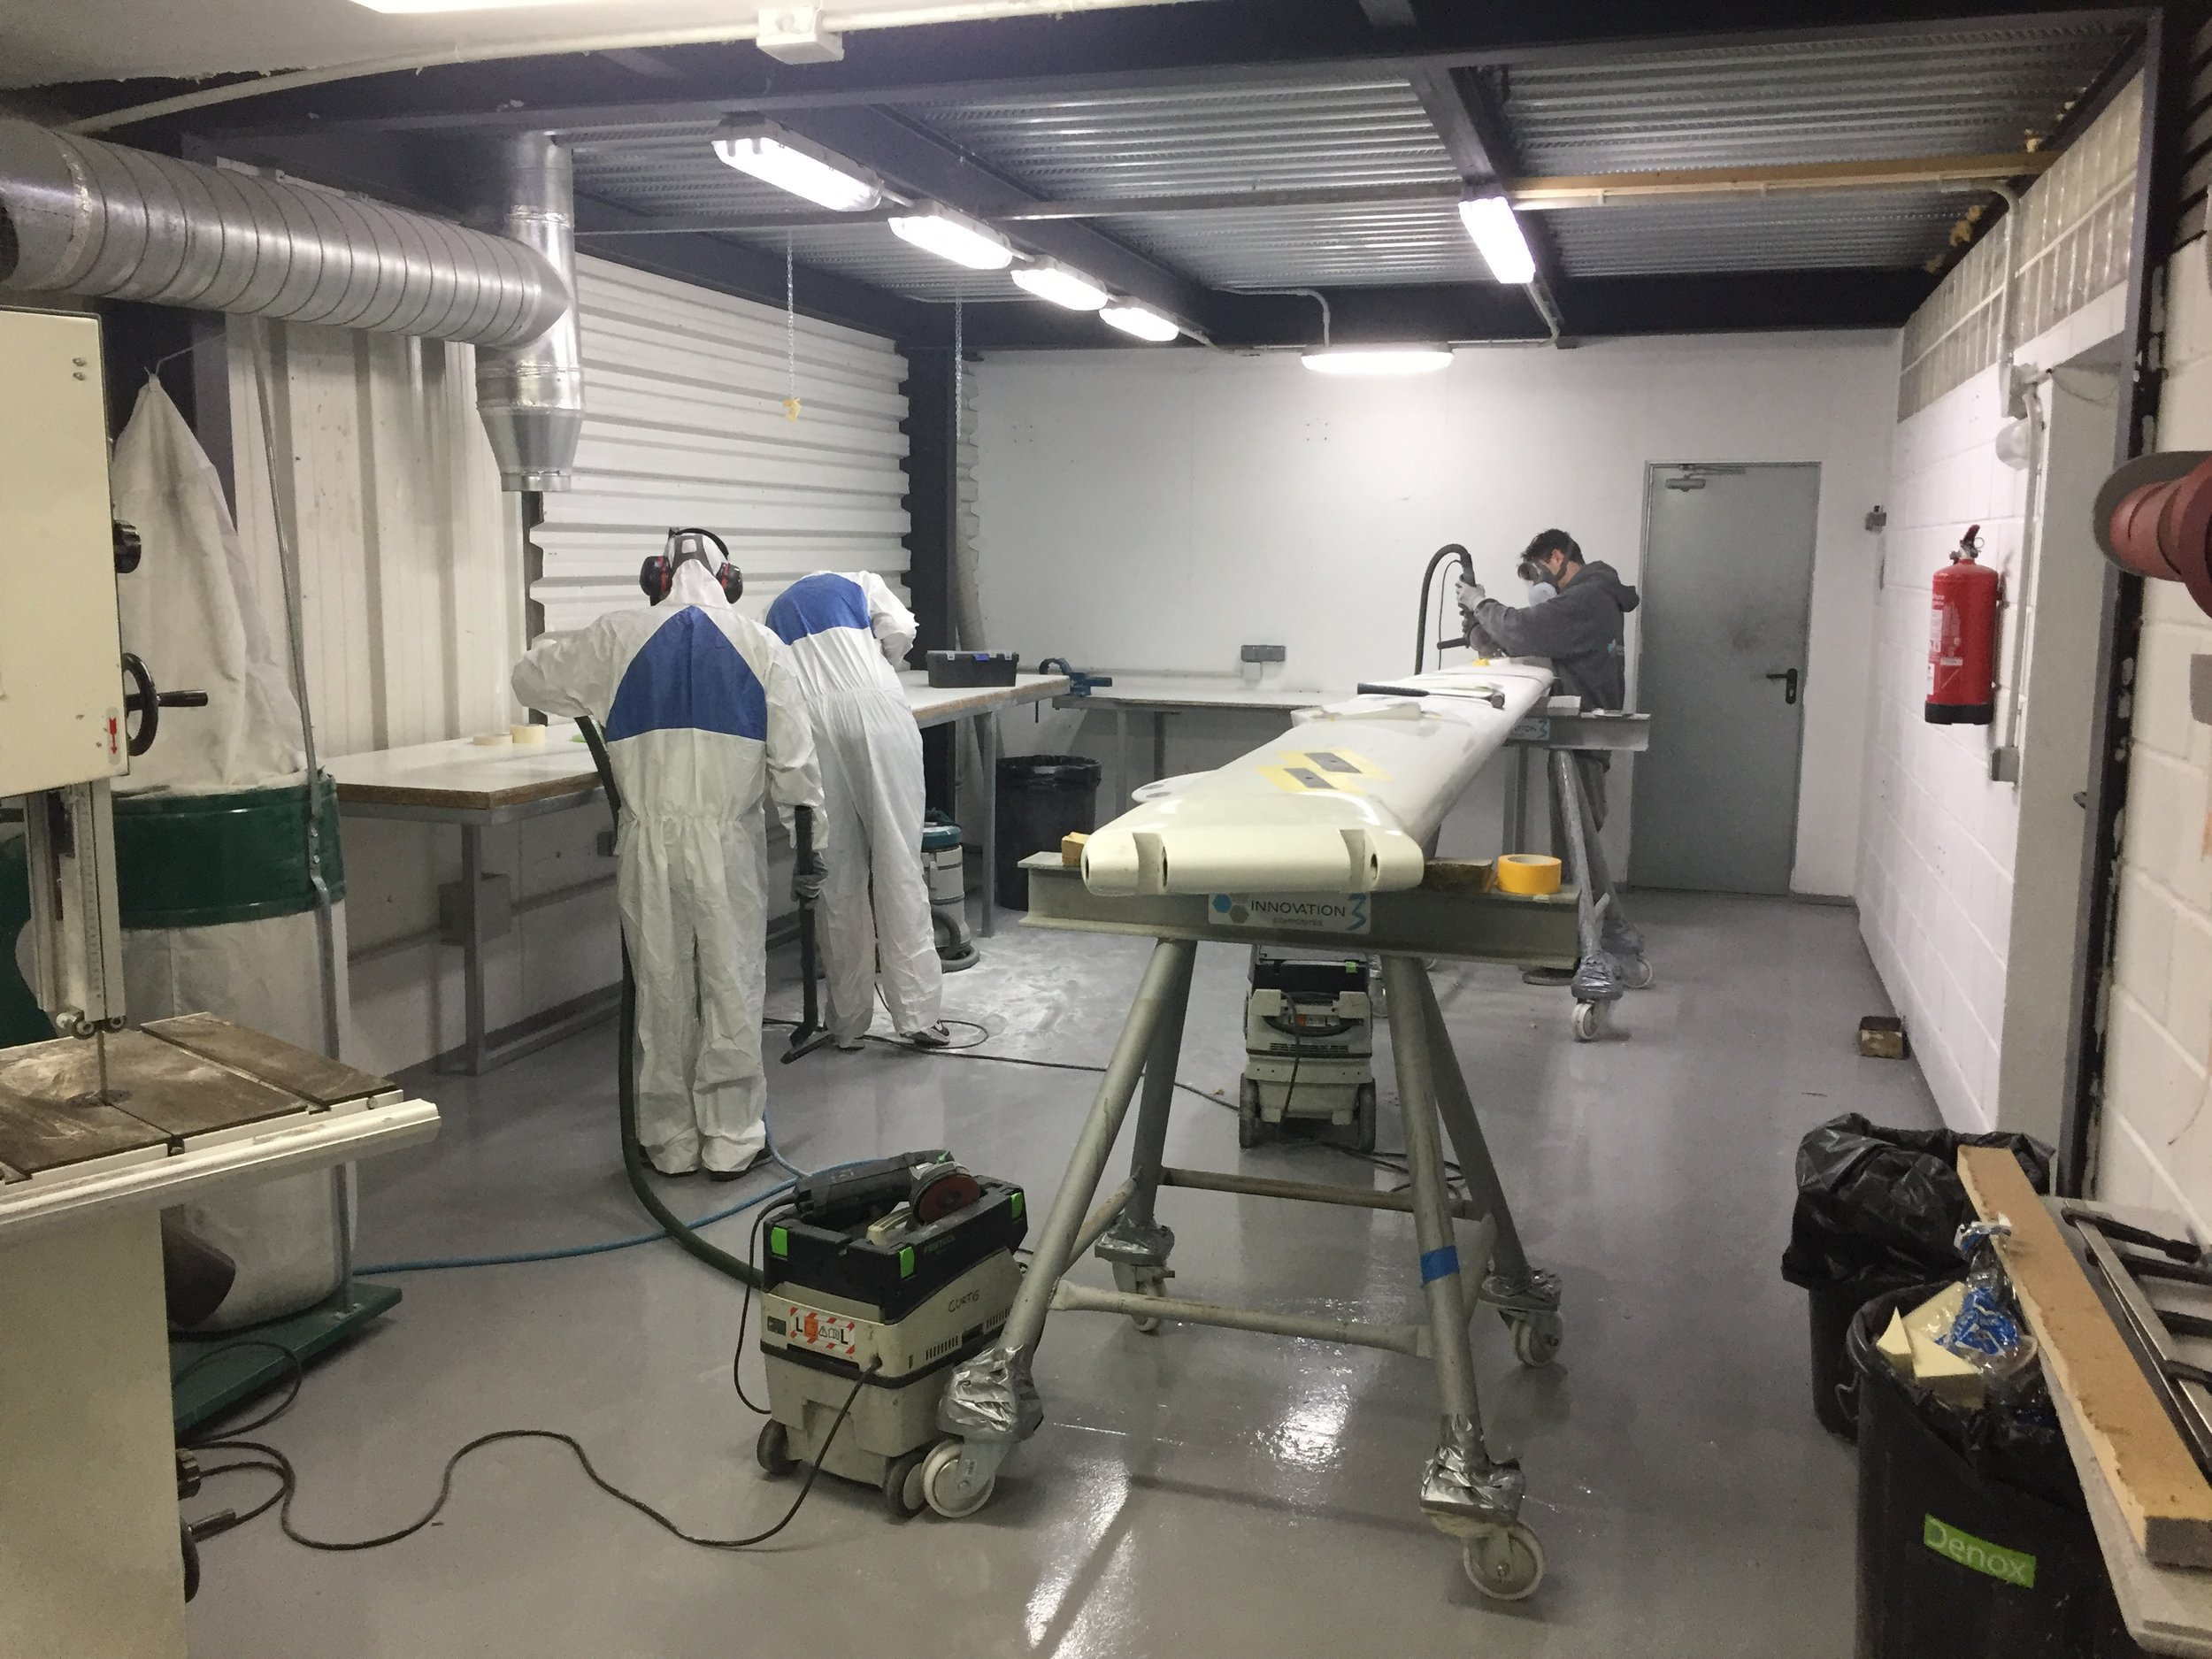 Fully extracted grinding bay/ trim shop for all cutting/grinding/sanding